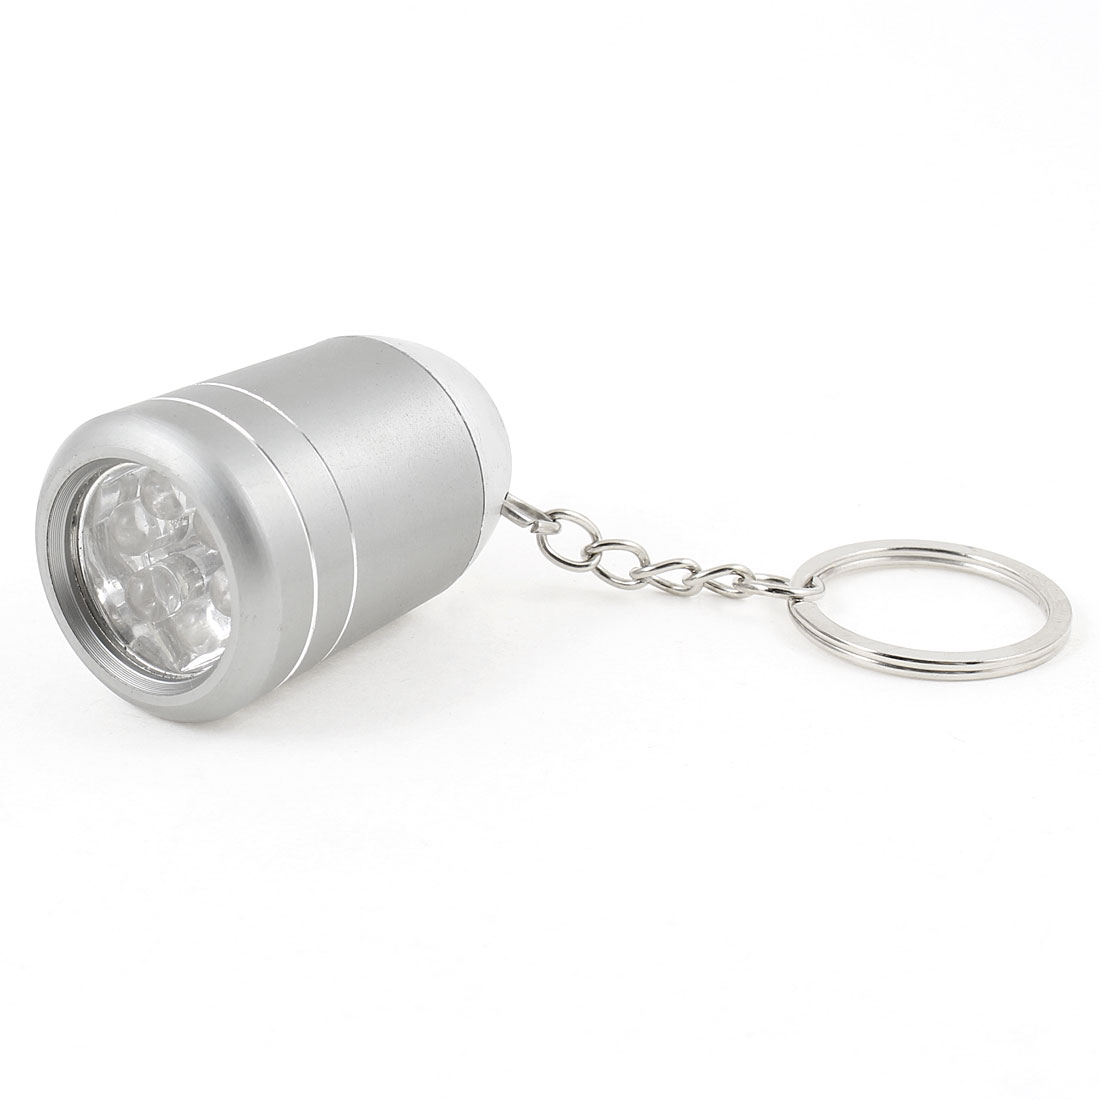 Silver Tone Alloy Shell Battery Power 6 White LED Flashlight Torch w Key Ring